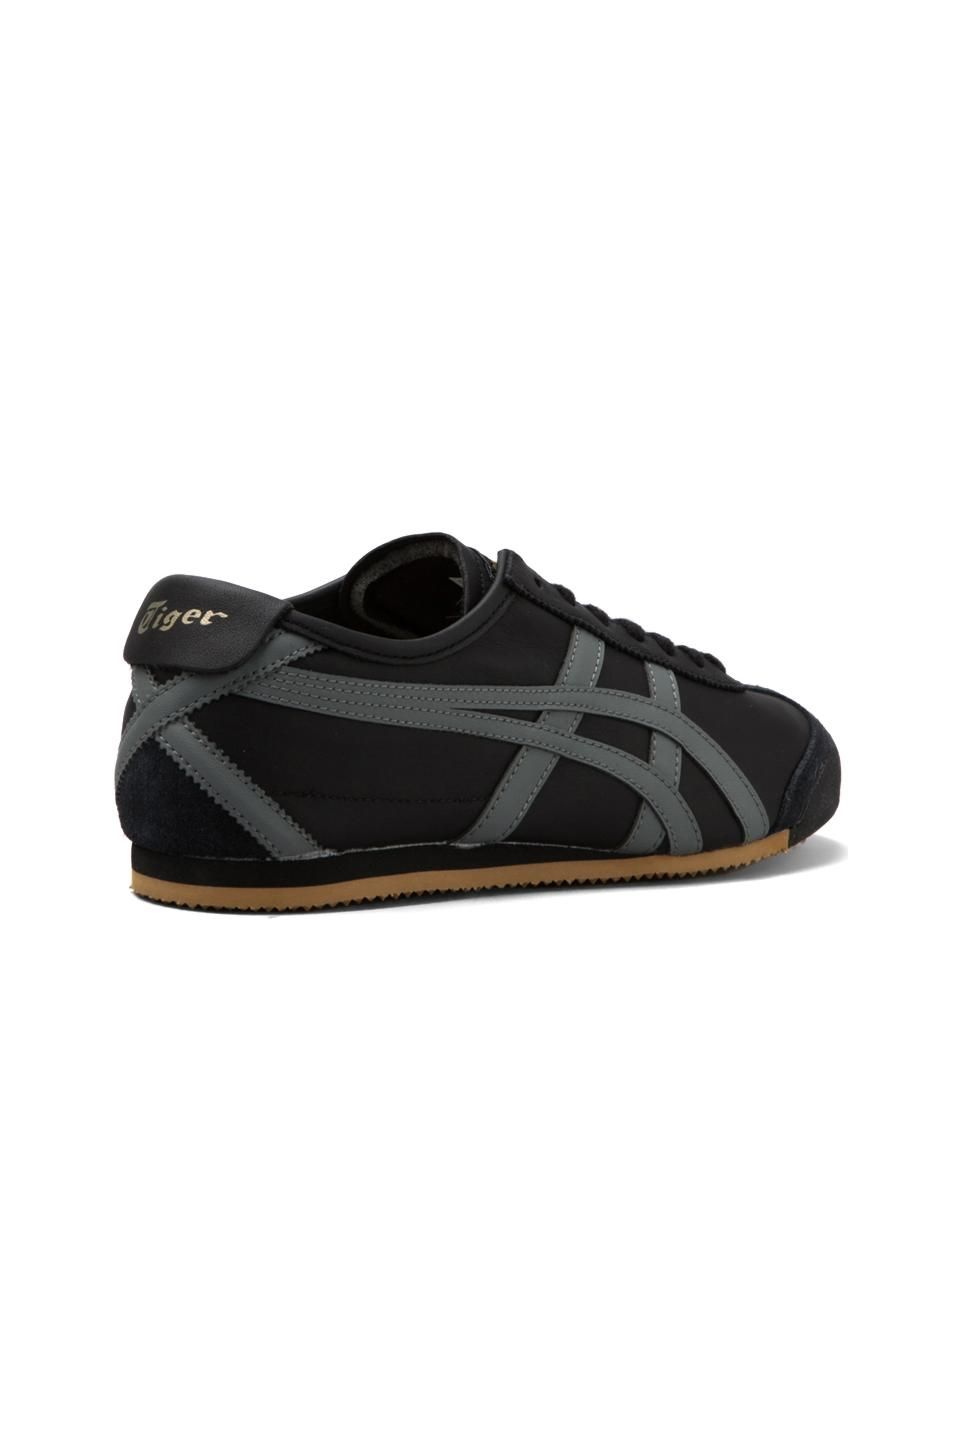 b05ff7d75e311 Onitsuka Tiger Mexico 66 in Black Grey Gold